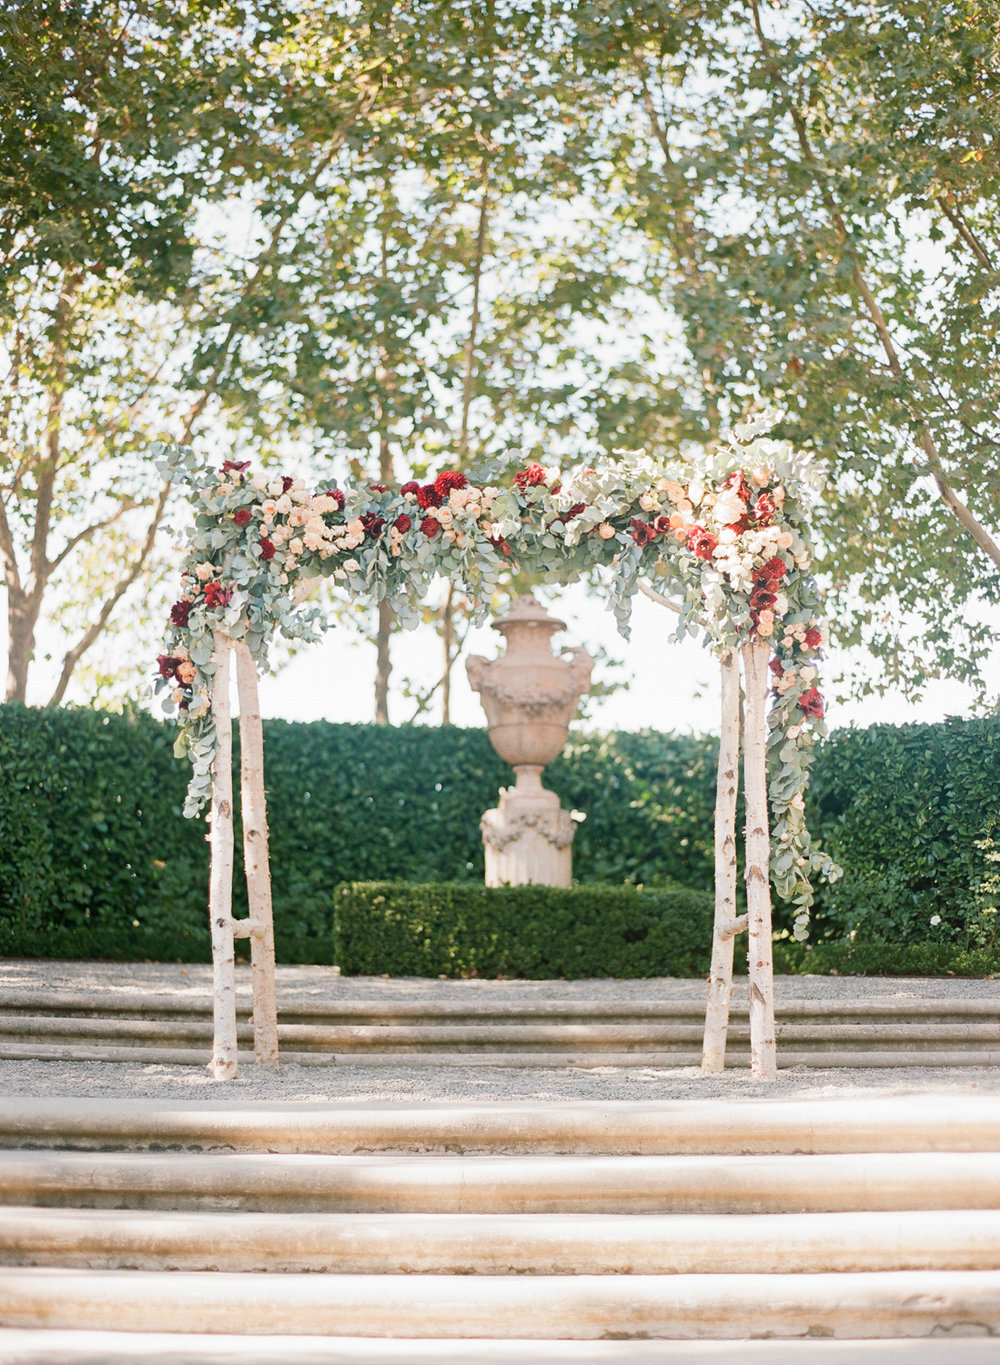 Floral arbor made up of birch stems and eucalyptus leaves in the Beaulieu Gardens ceremony space; Sylvie Gil Photography